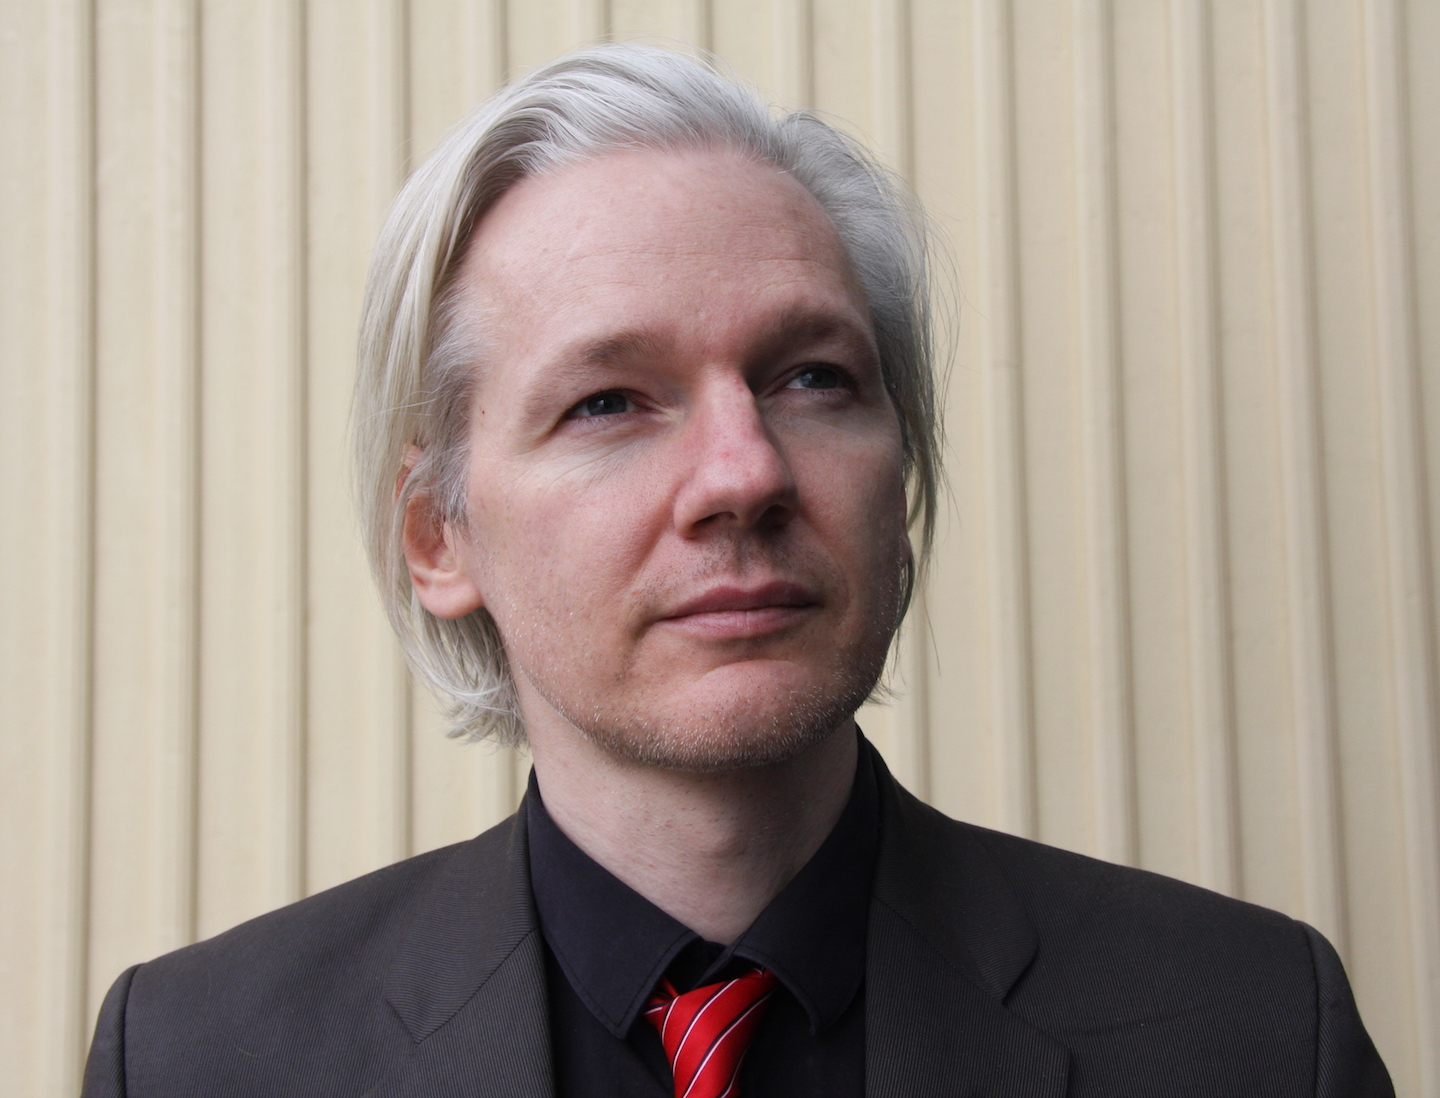 Image: Leftist conspiracy theory collapses as Julian Assange confirms Russia not involved in Wikileaks dumps